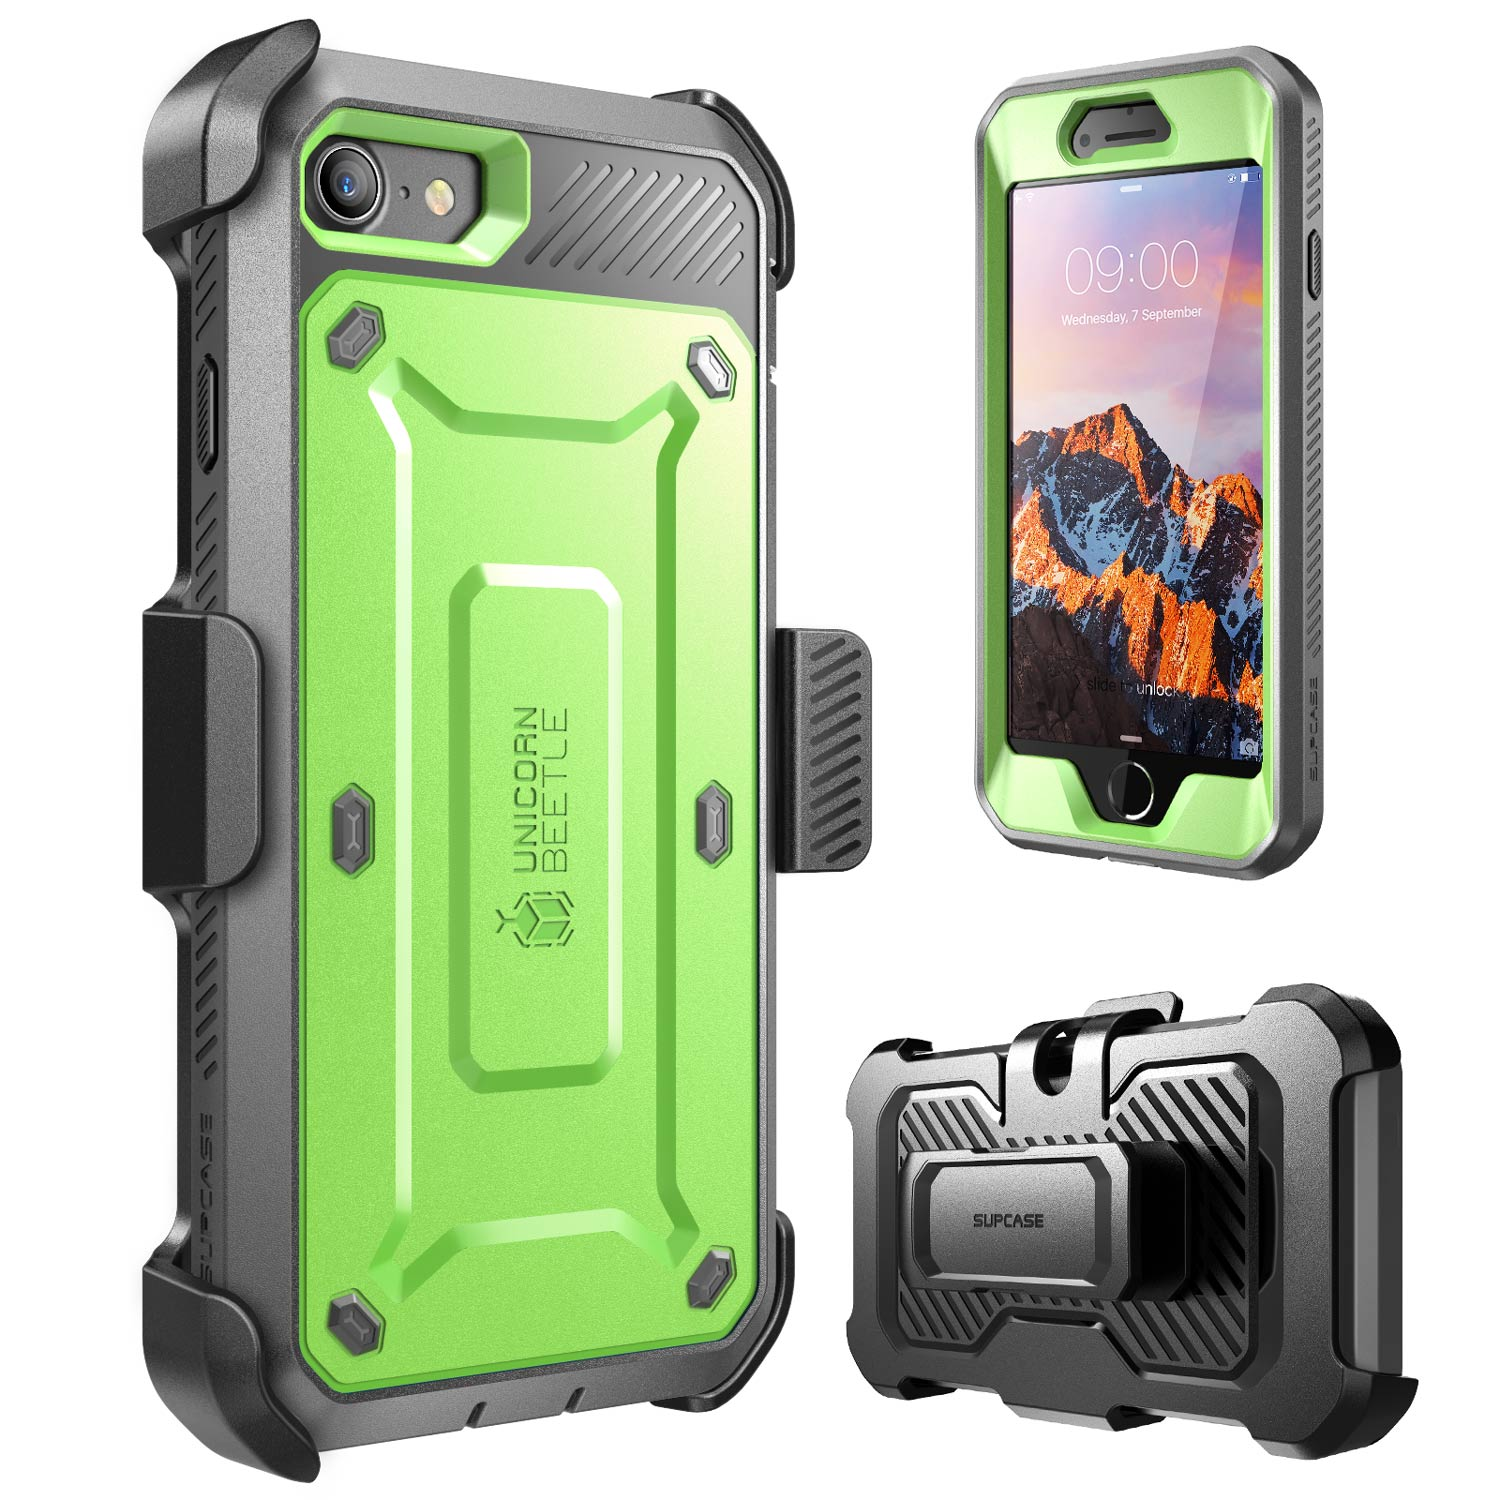 SUPCASE Case for iPhone 7 4.7 inch [UBPro] +Built-in Screen Protector +Clip